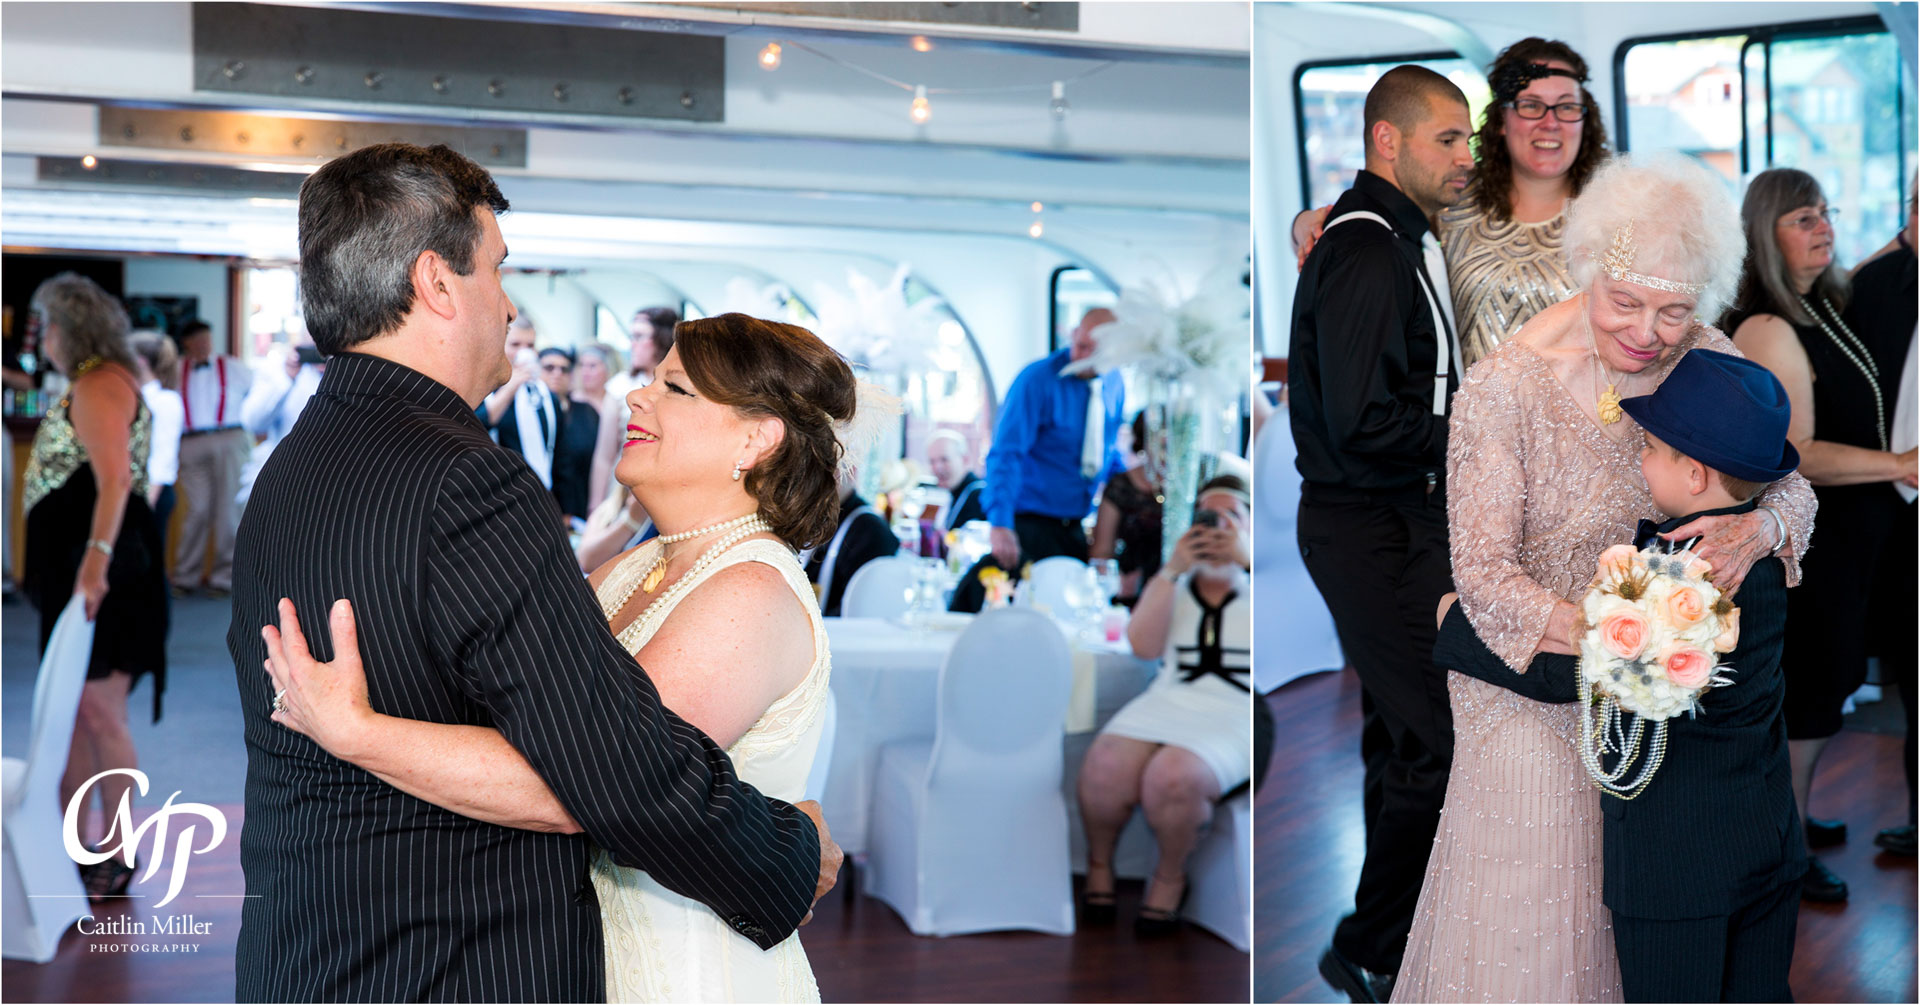 bombard-25.jpg from Jan and Robert's vow renewal on shoreline Cruise's Adirondac Boat on Lake George, NY by Saratoga Wedding Photographer Caitlin Miller Photography. Lake George Wedding Photographer. Stamford wedding photographer. Albany wedding photographer. Shoreline Cruises Wedding Photographer. Saratoga Wedding Photographer